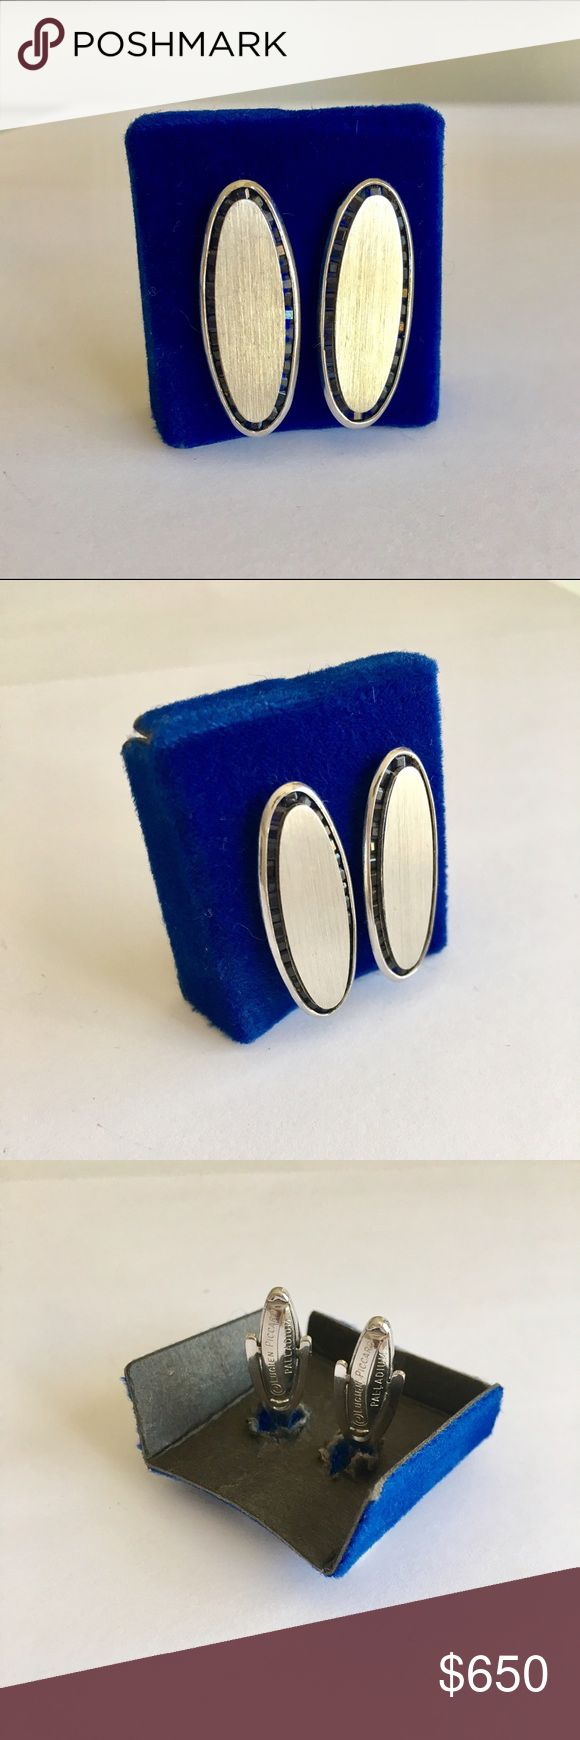 """Lucien Piccard Blue Sapphire Palladium Cufflinks Stone: Sapphire. Metal: Palladium. Length: 1.25"""" x 0.5"""". New without tags. Comes in cufflink box. Lucien Piccard Accessories"""